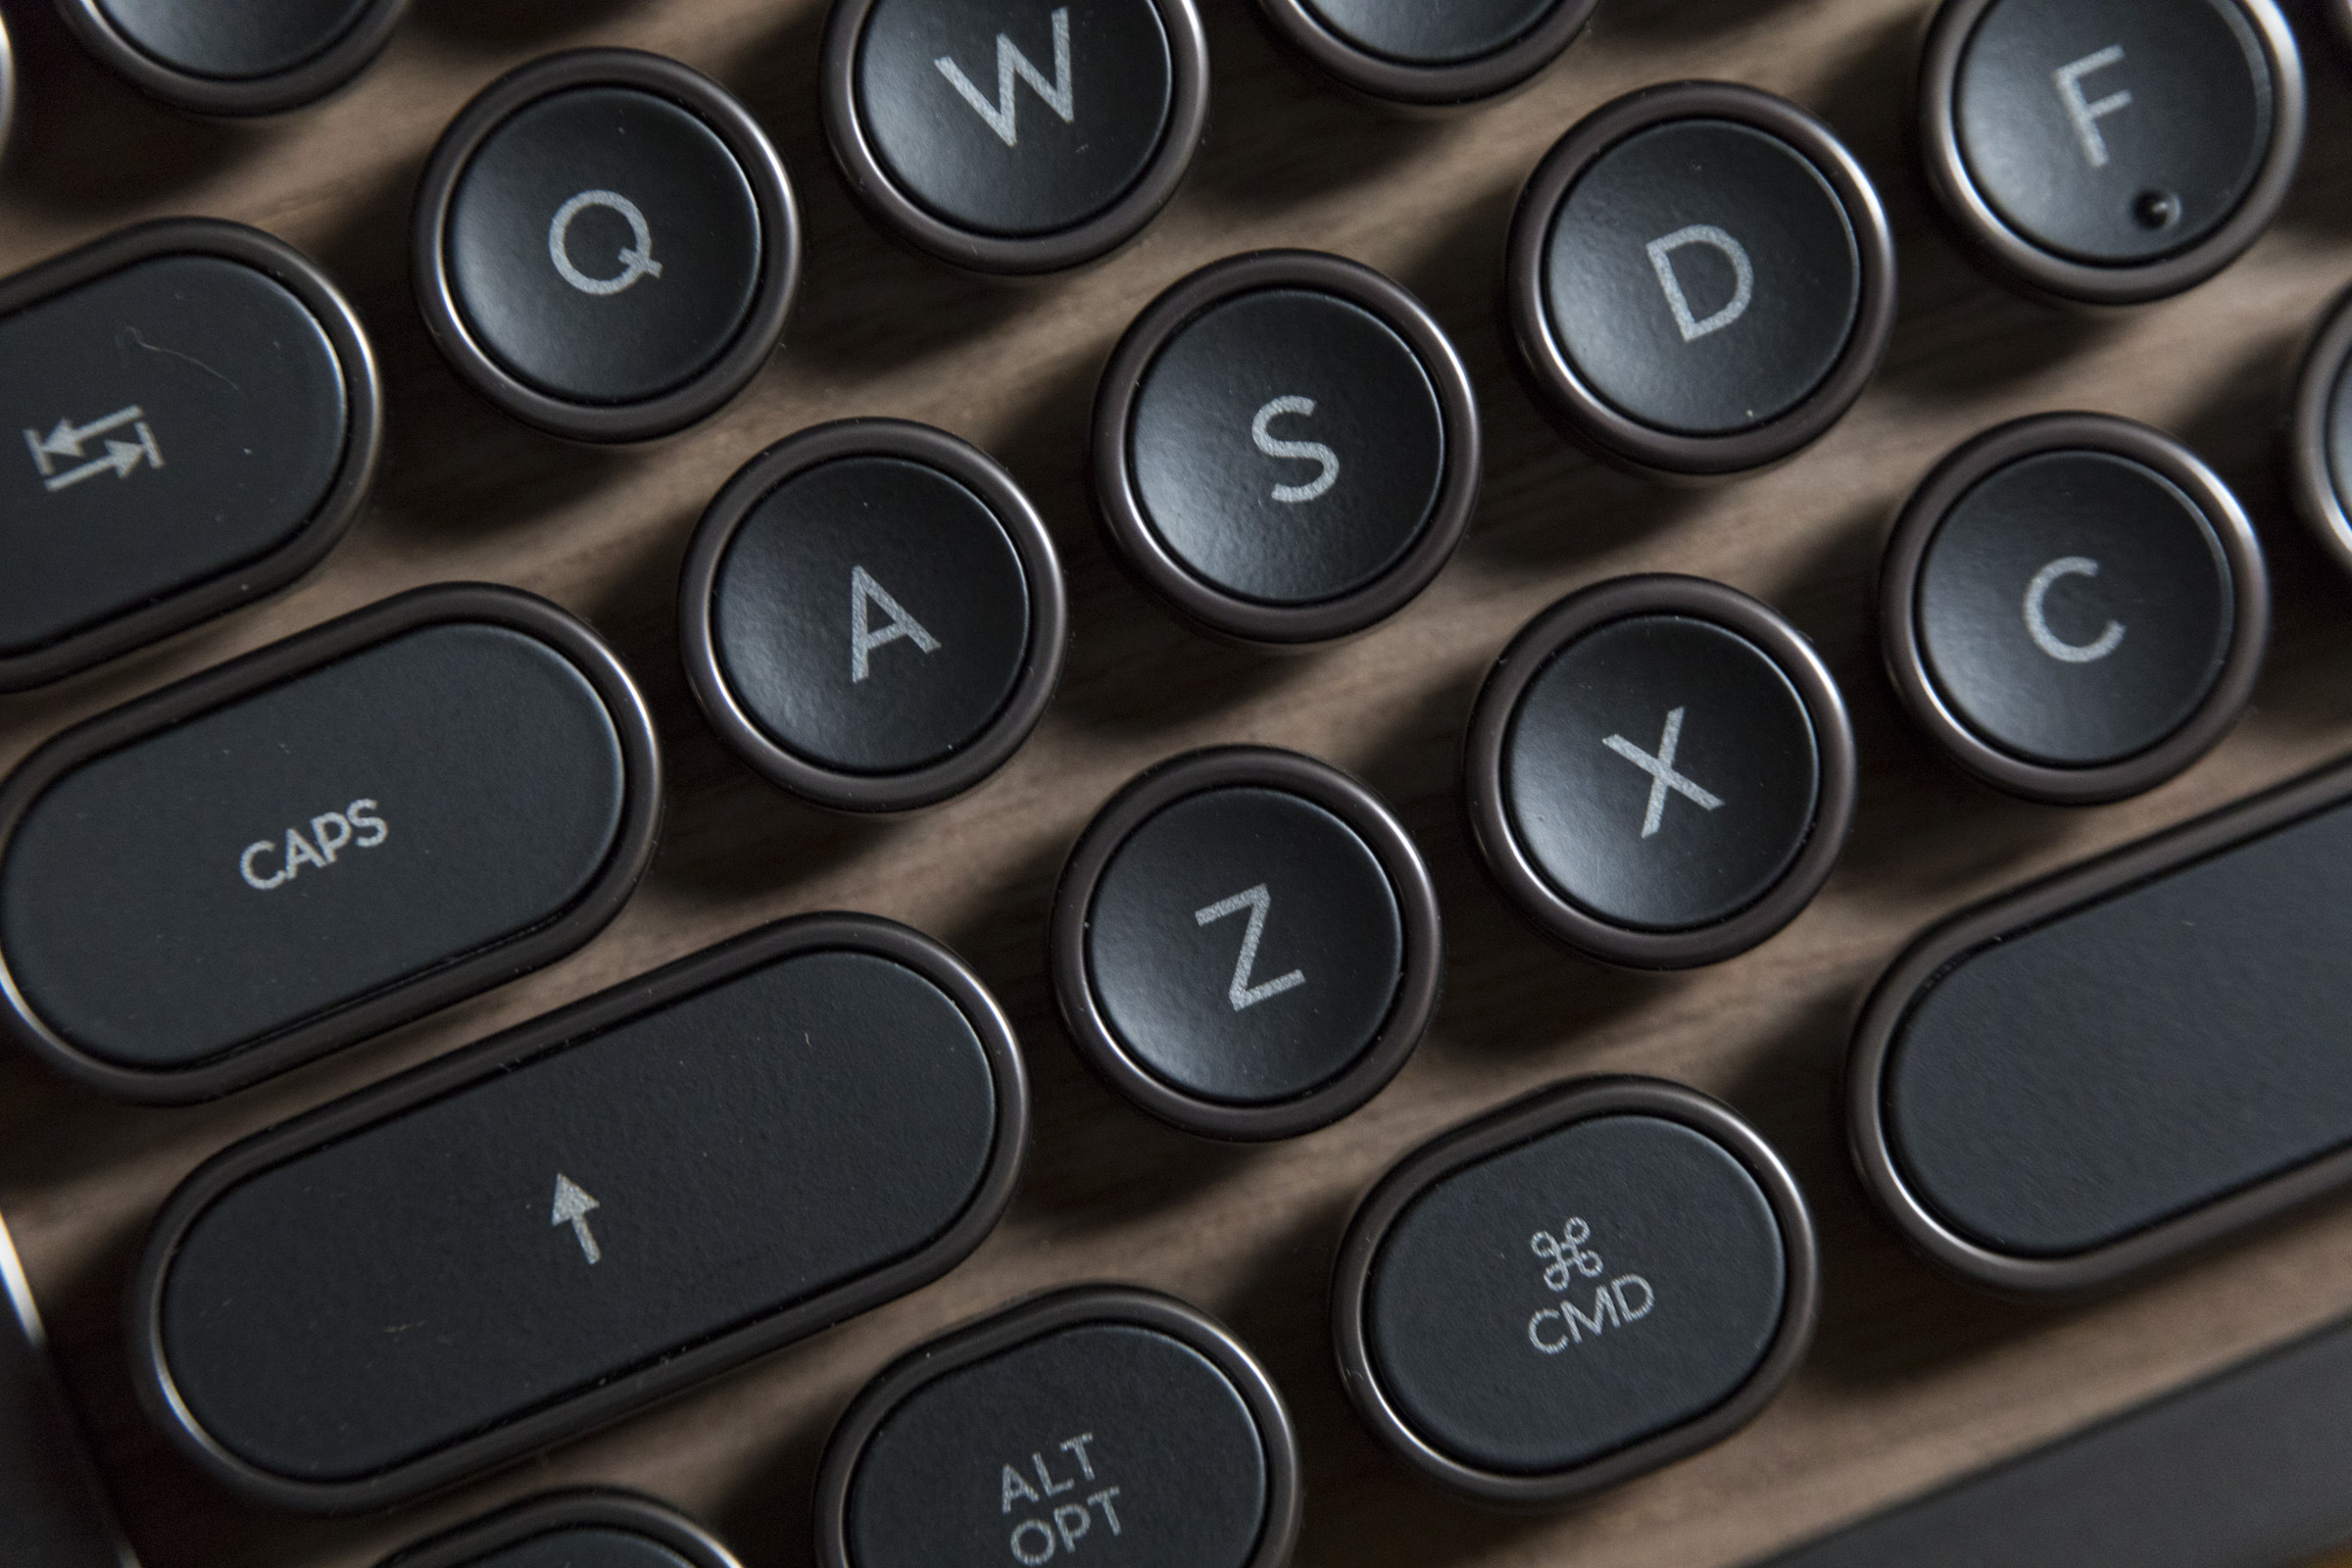 1518209330 582 the retro classic azio bluetooth keyboard inspired by the typewriter is a luxury treat - The retro-classic Azio Bluetooth keyboard inspired by the typewriter is a luxury treat